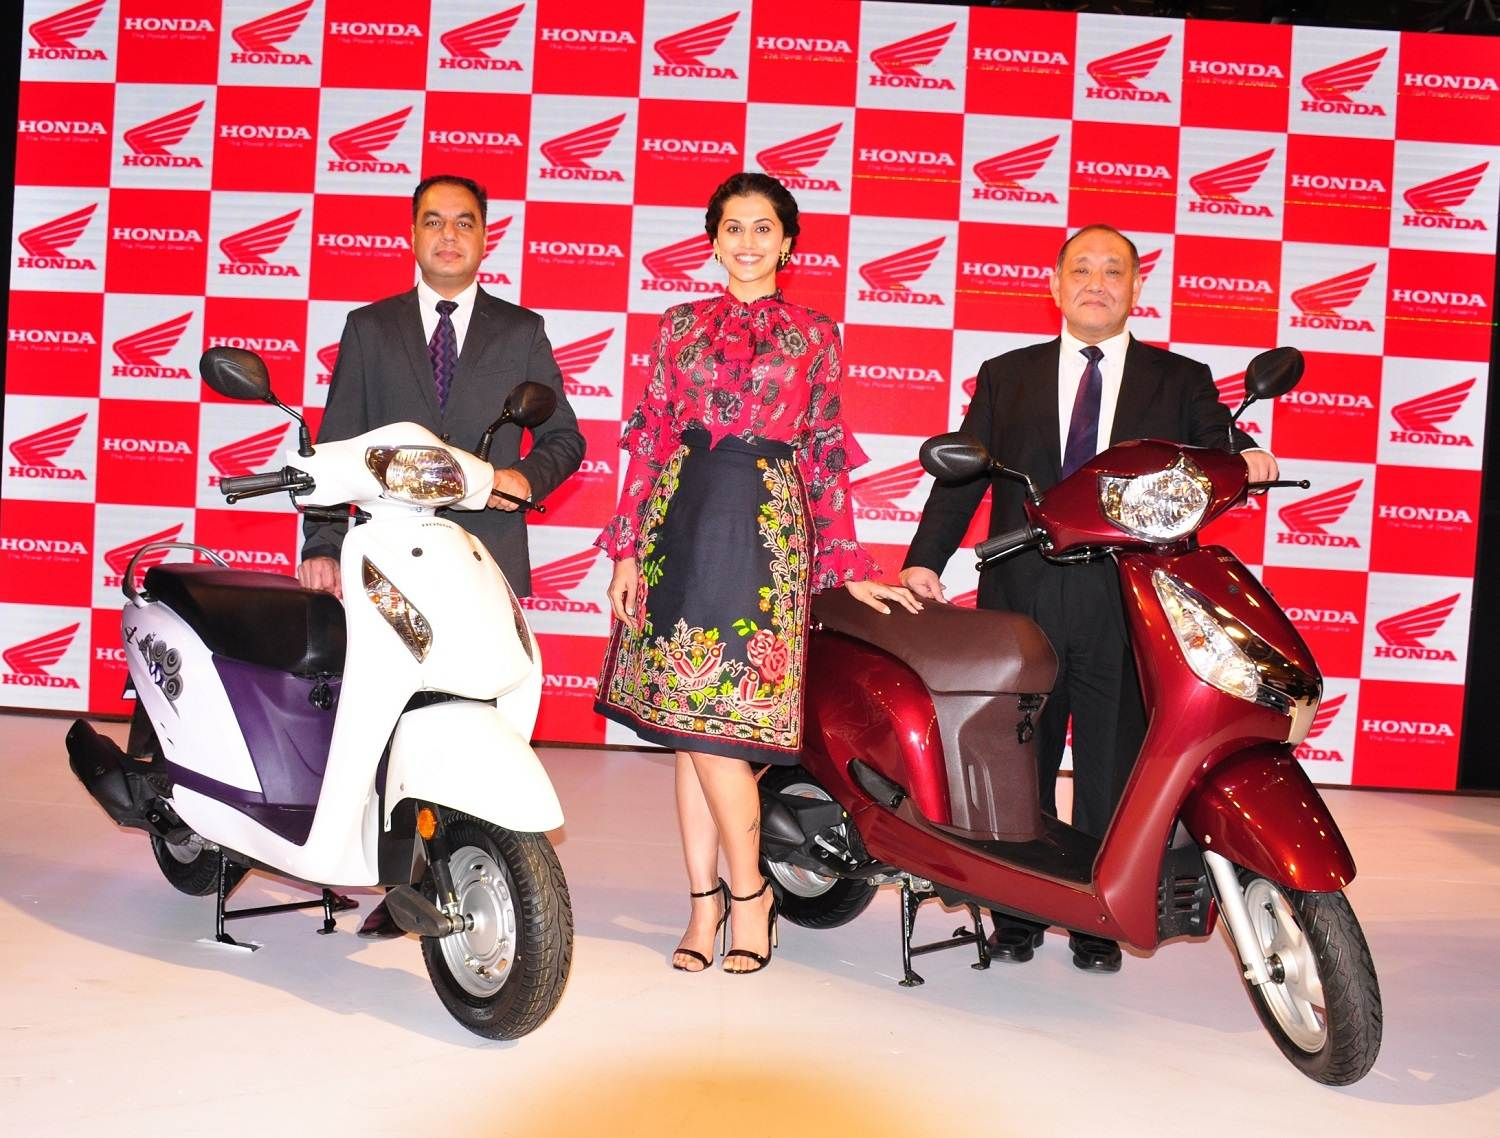 Honda Taapsee Pannu scooter launch